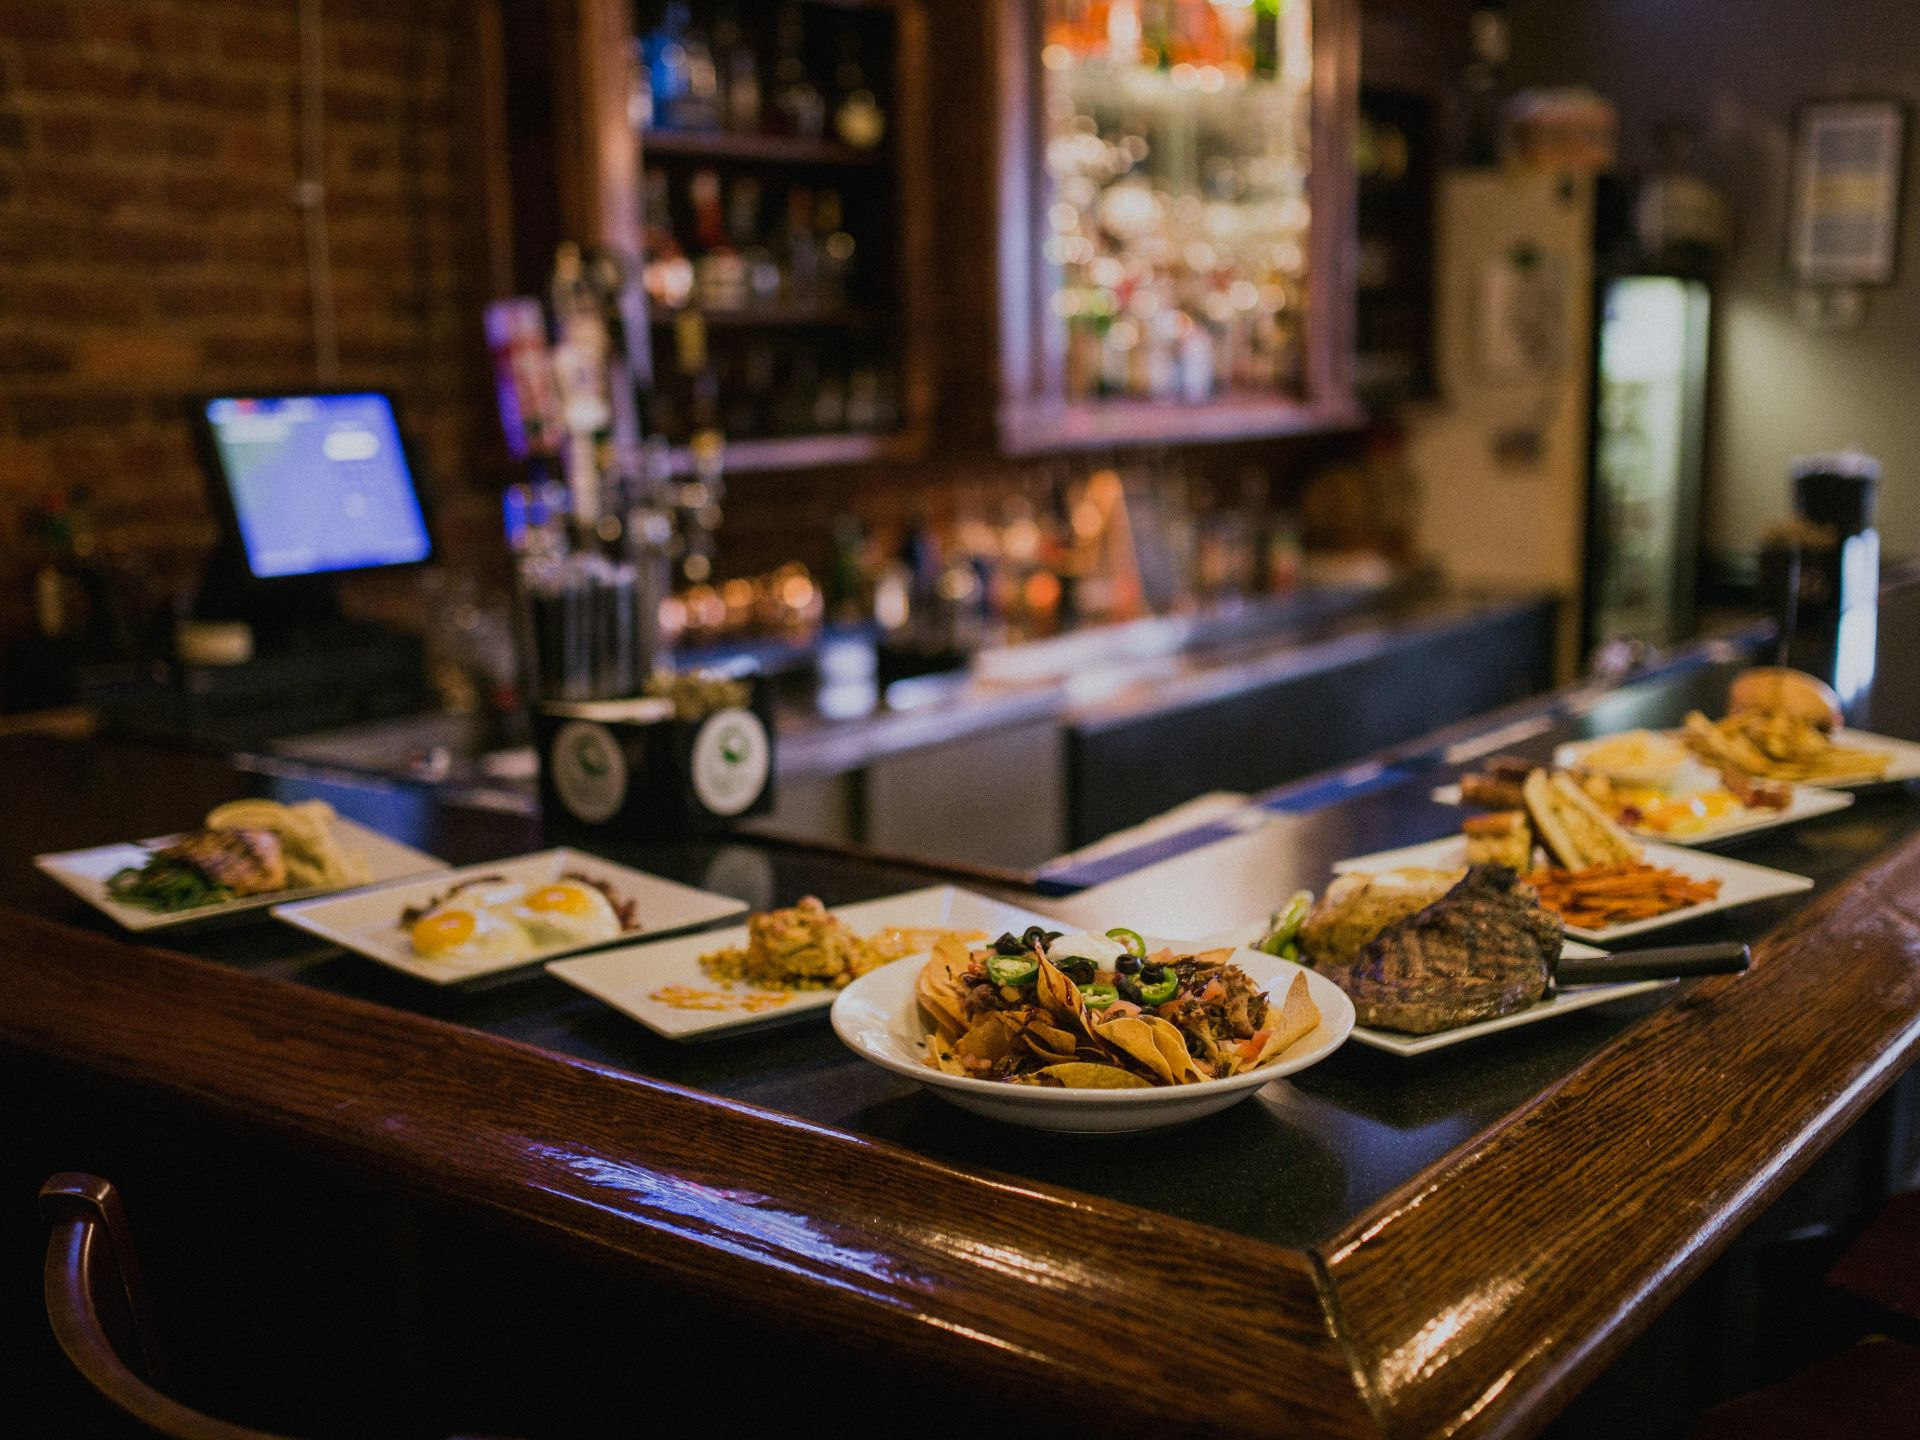 An assortment of plated entrees and appetizers on a bar-top